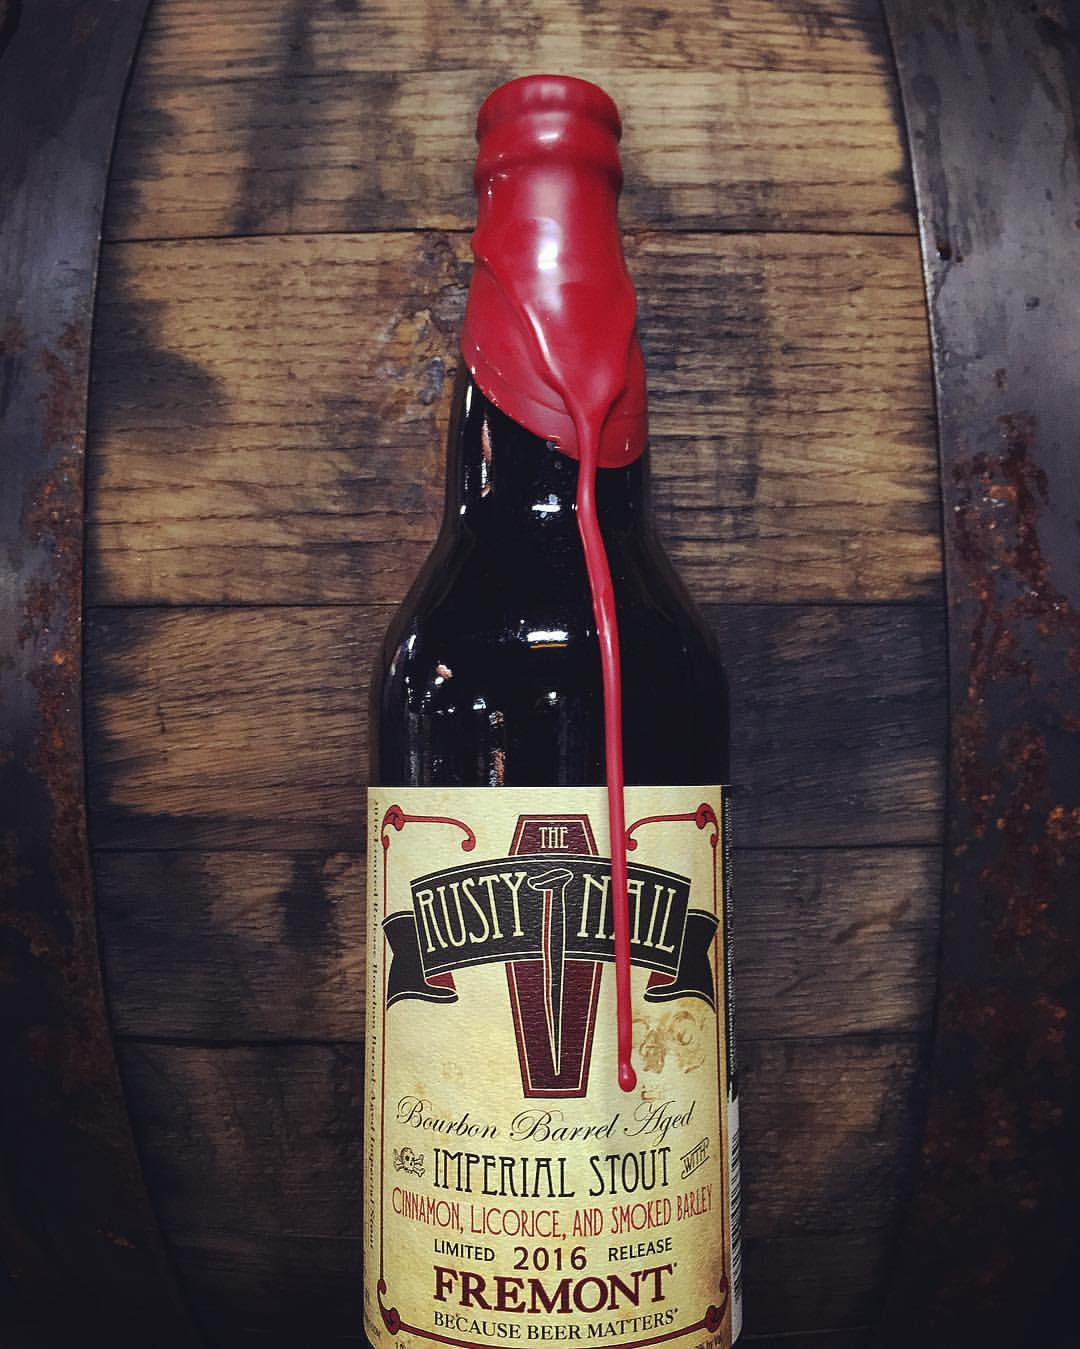 A 22 oz. wax dipped bottle of The Rusty Nail. (image courtesy of Fremont Brewing Company)